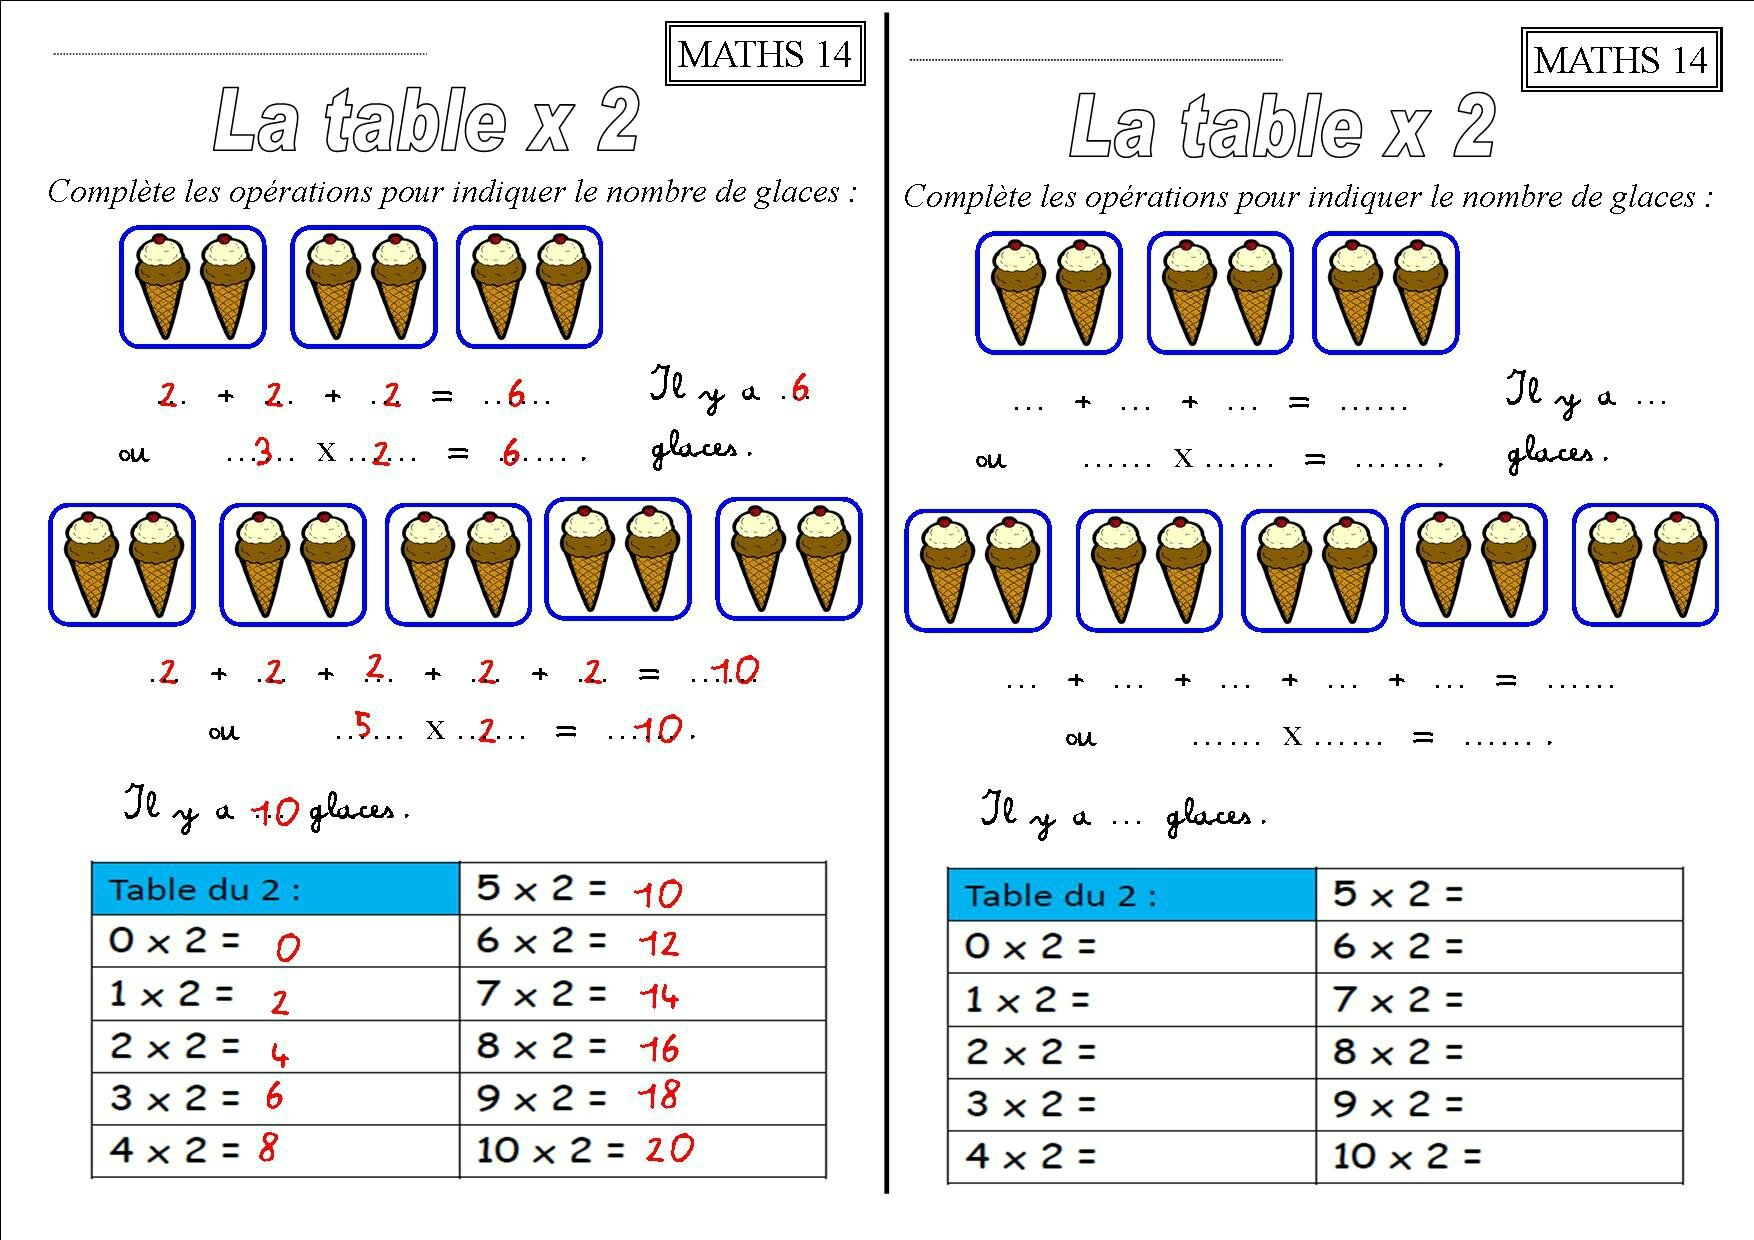 Les tables de multiplication ce1 x 2 x 3 x 4 x 5 x - Reviser les tables de multiplications ce2 ...